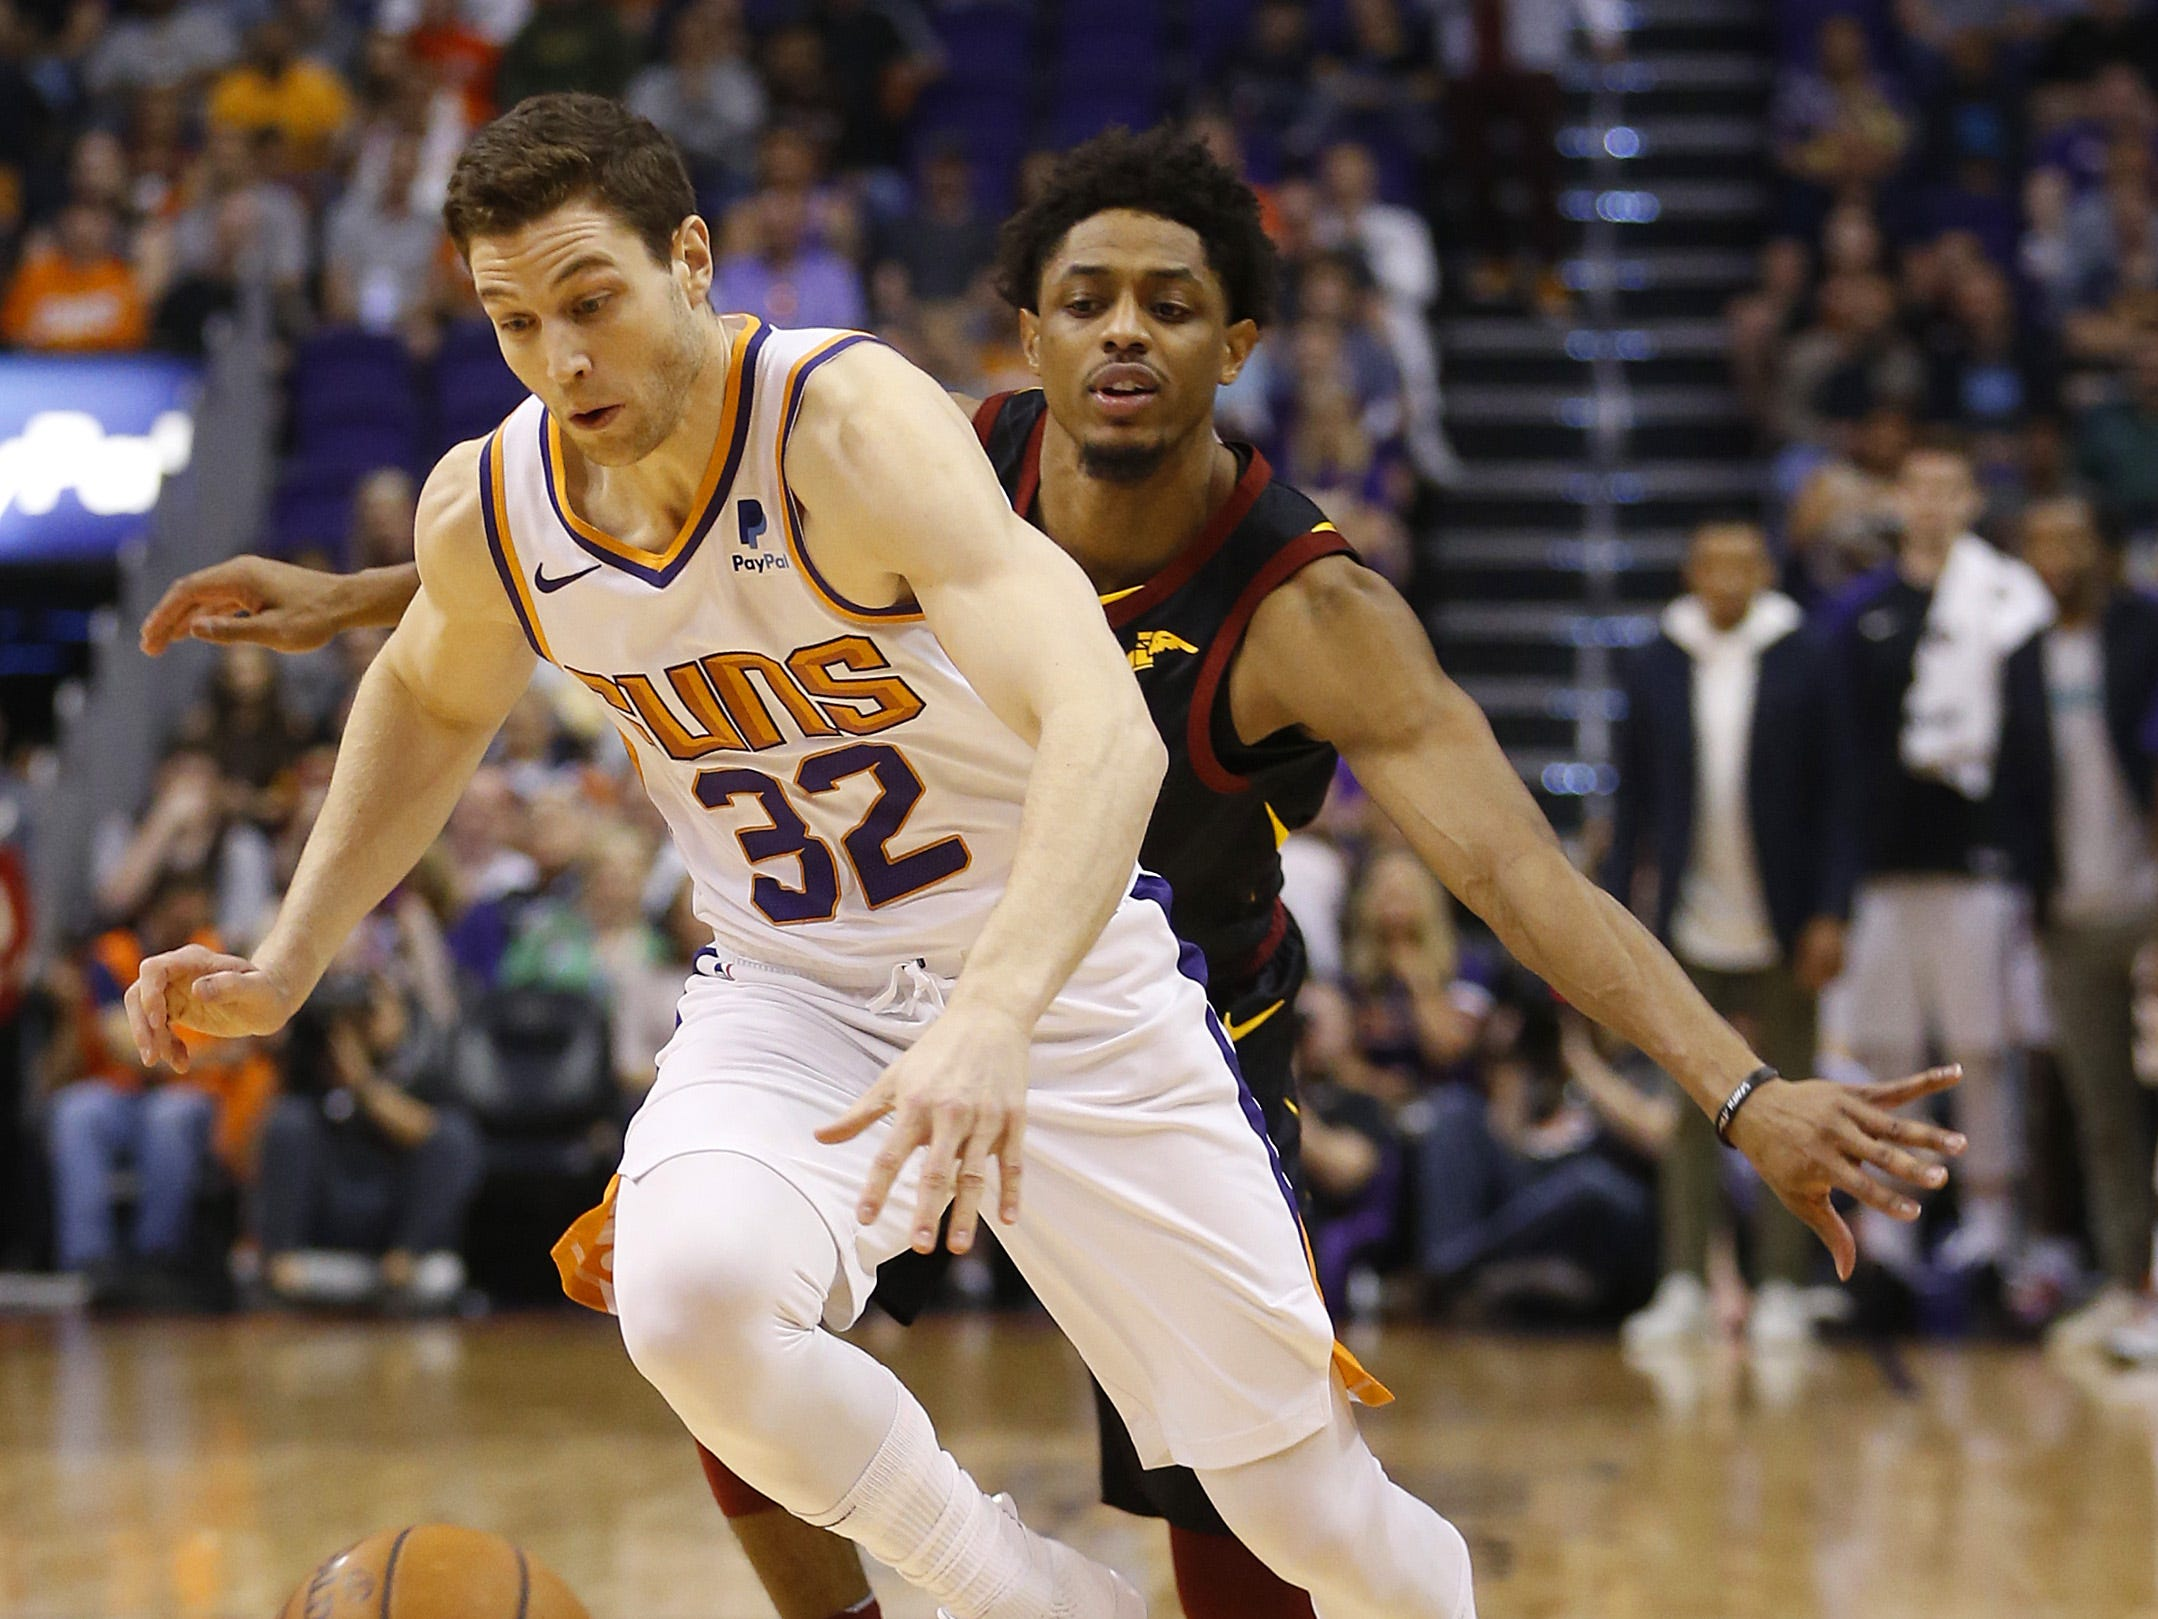 Suns' Jimmer Fredette (32) drives past Cavaliers' Brandon Knight (20) during the first half at Talking Stick Resort Arena in Phoenix, Ariz. on April 1, 2019.